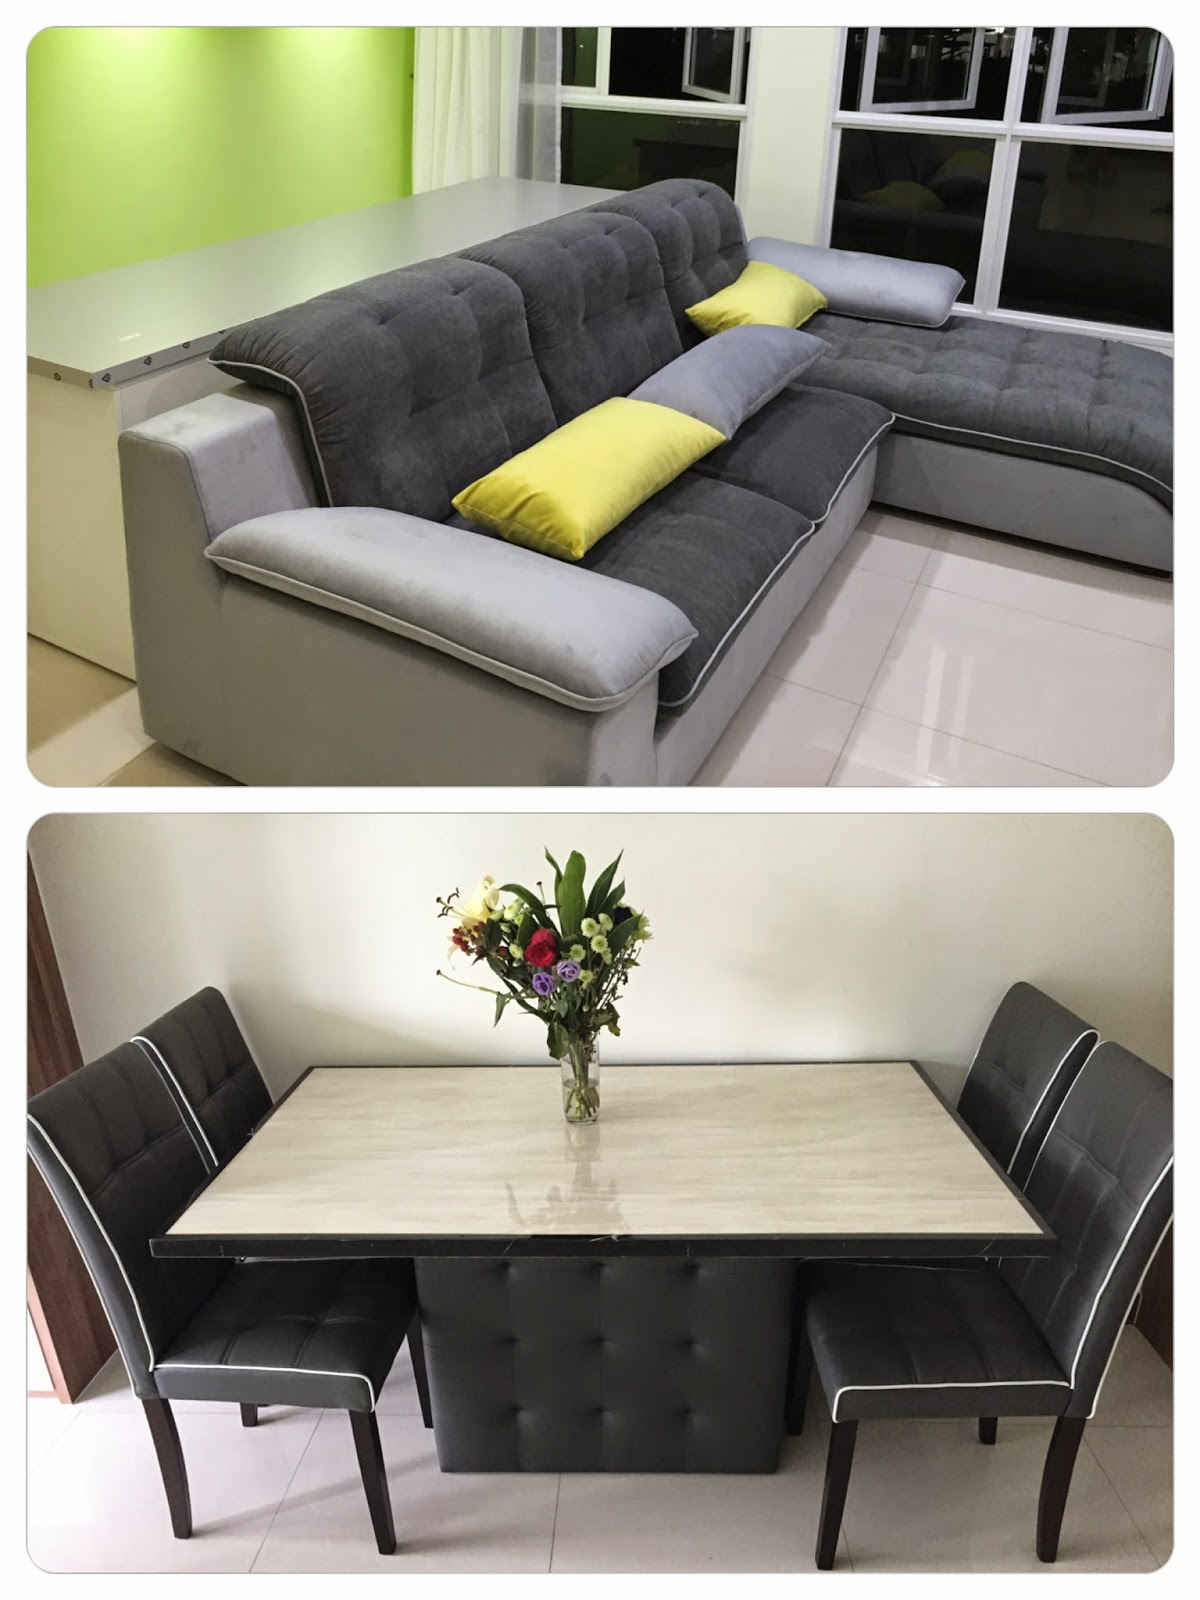 Sofa Shop In Johor Bahru Home Renovation Completed Just2me